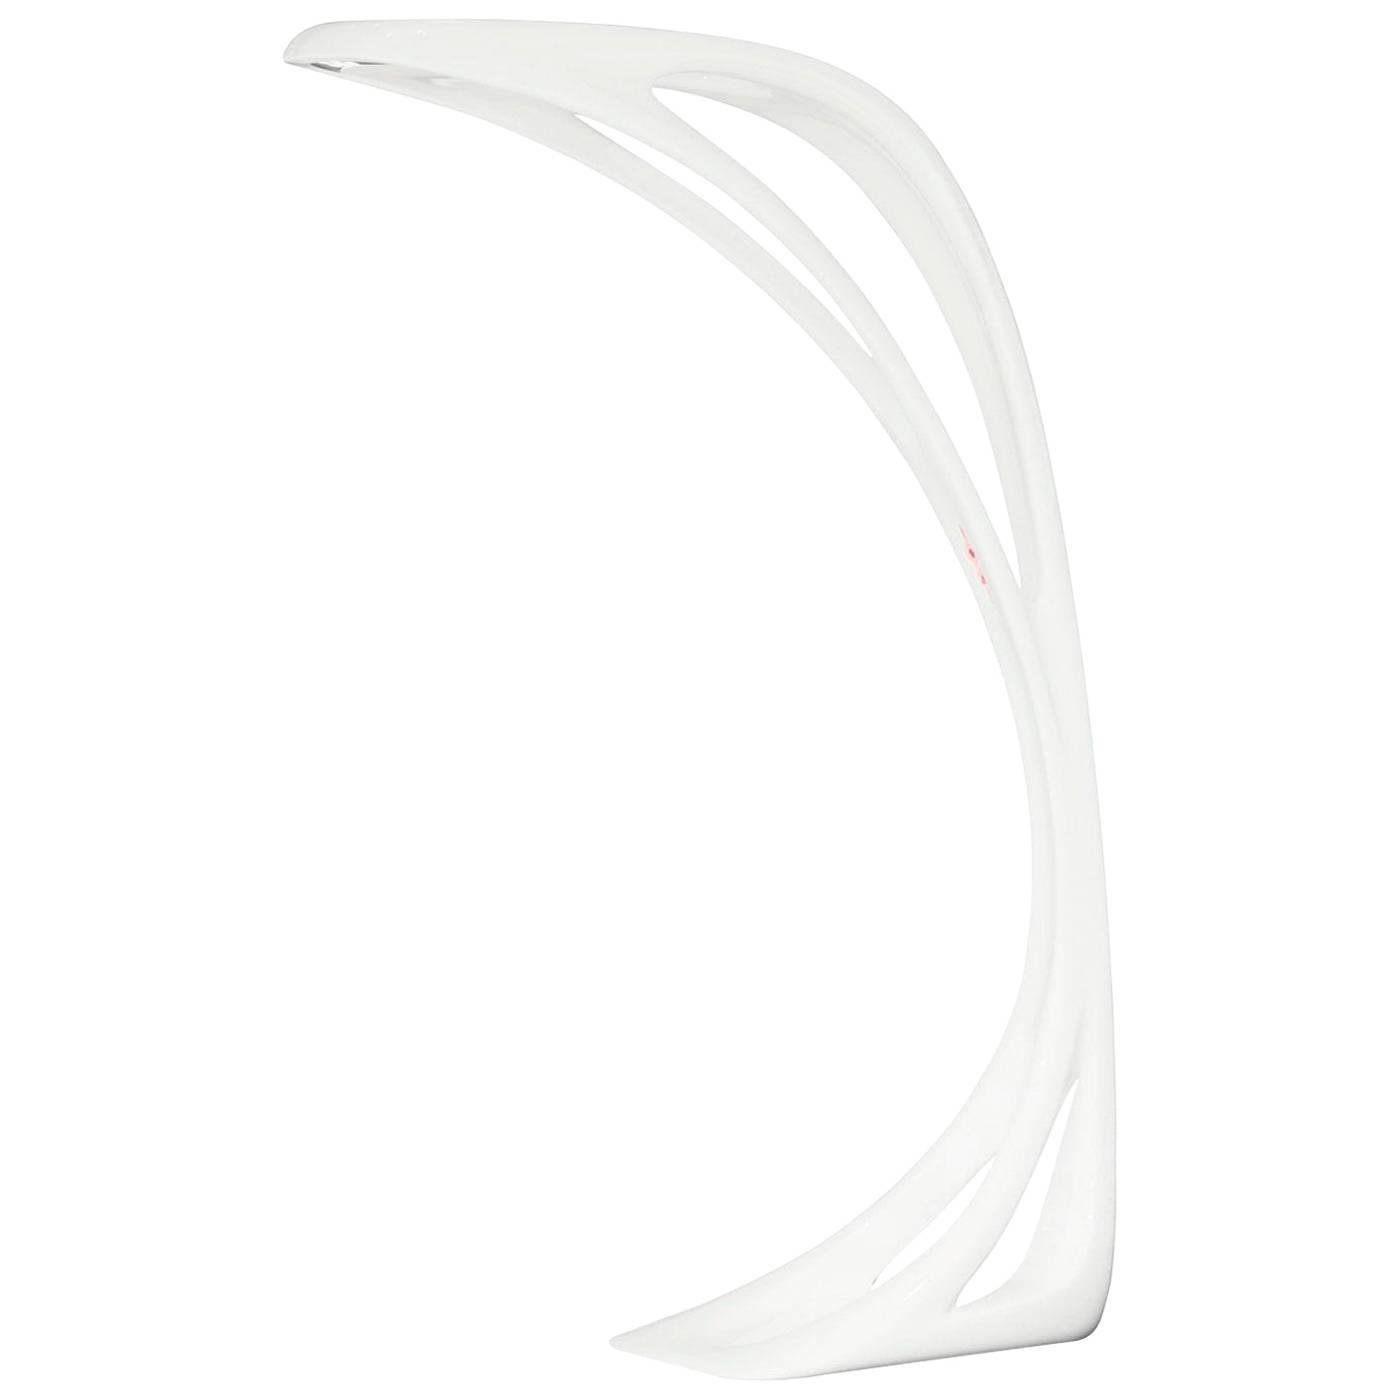 Brand new white artemide genesy floor lamp by zaha hadid for Zaha hadid lamp